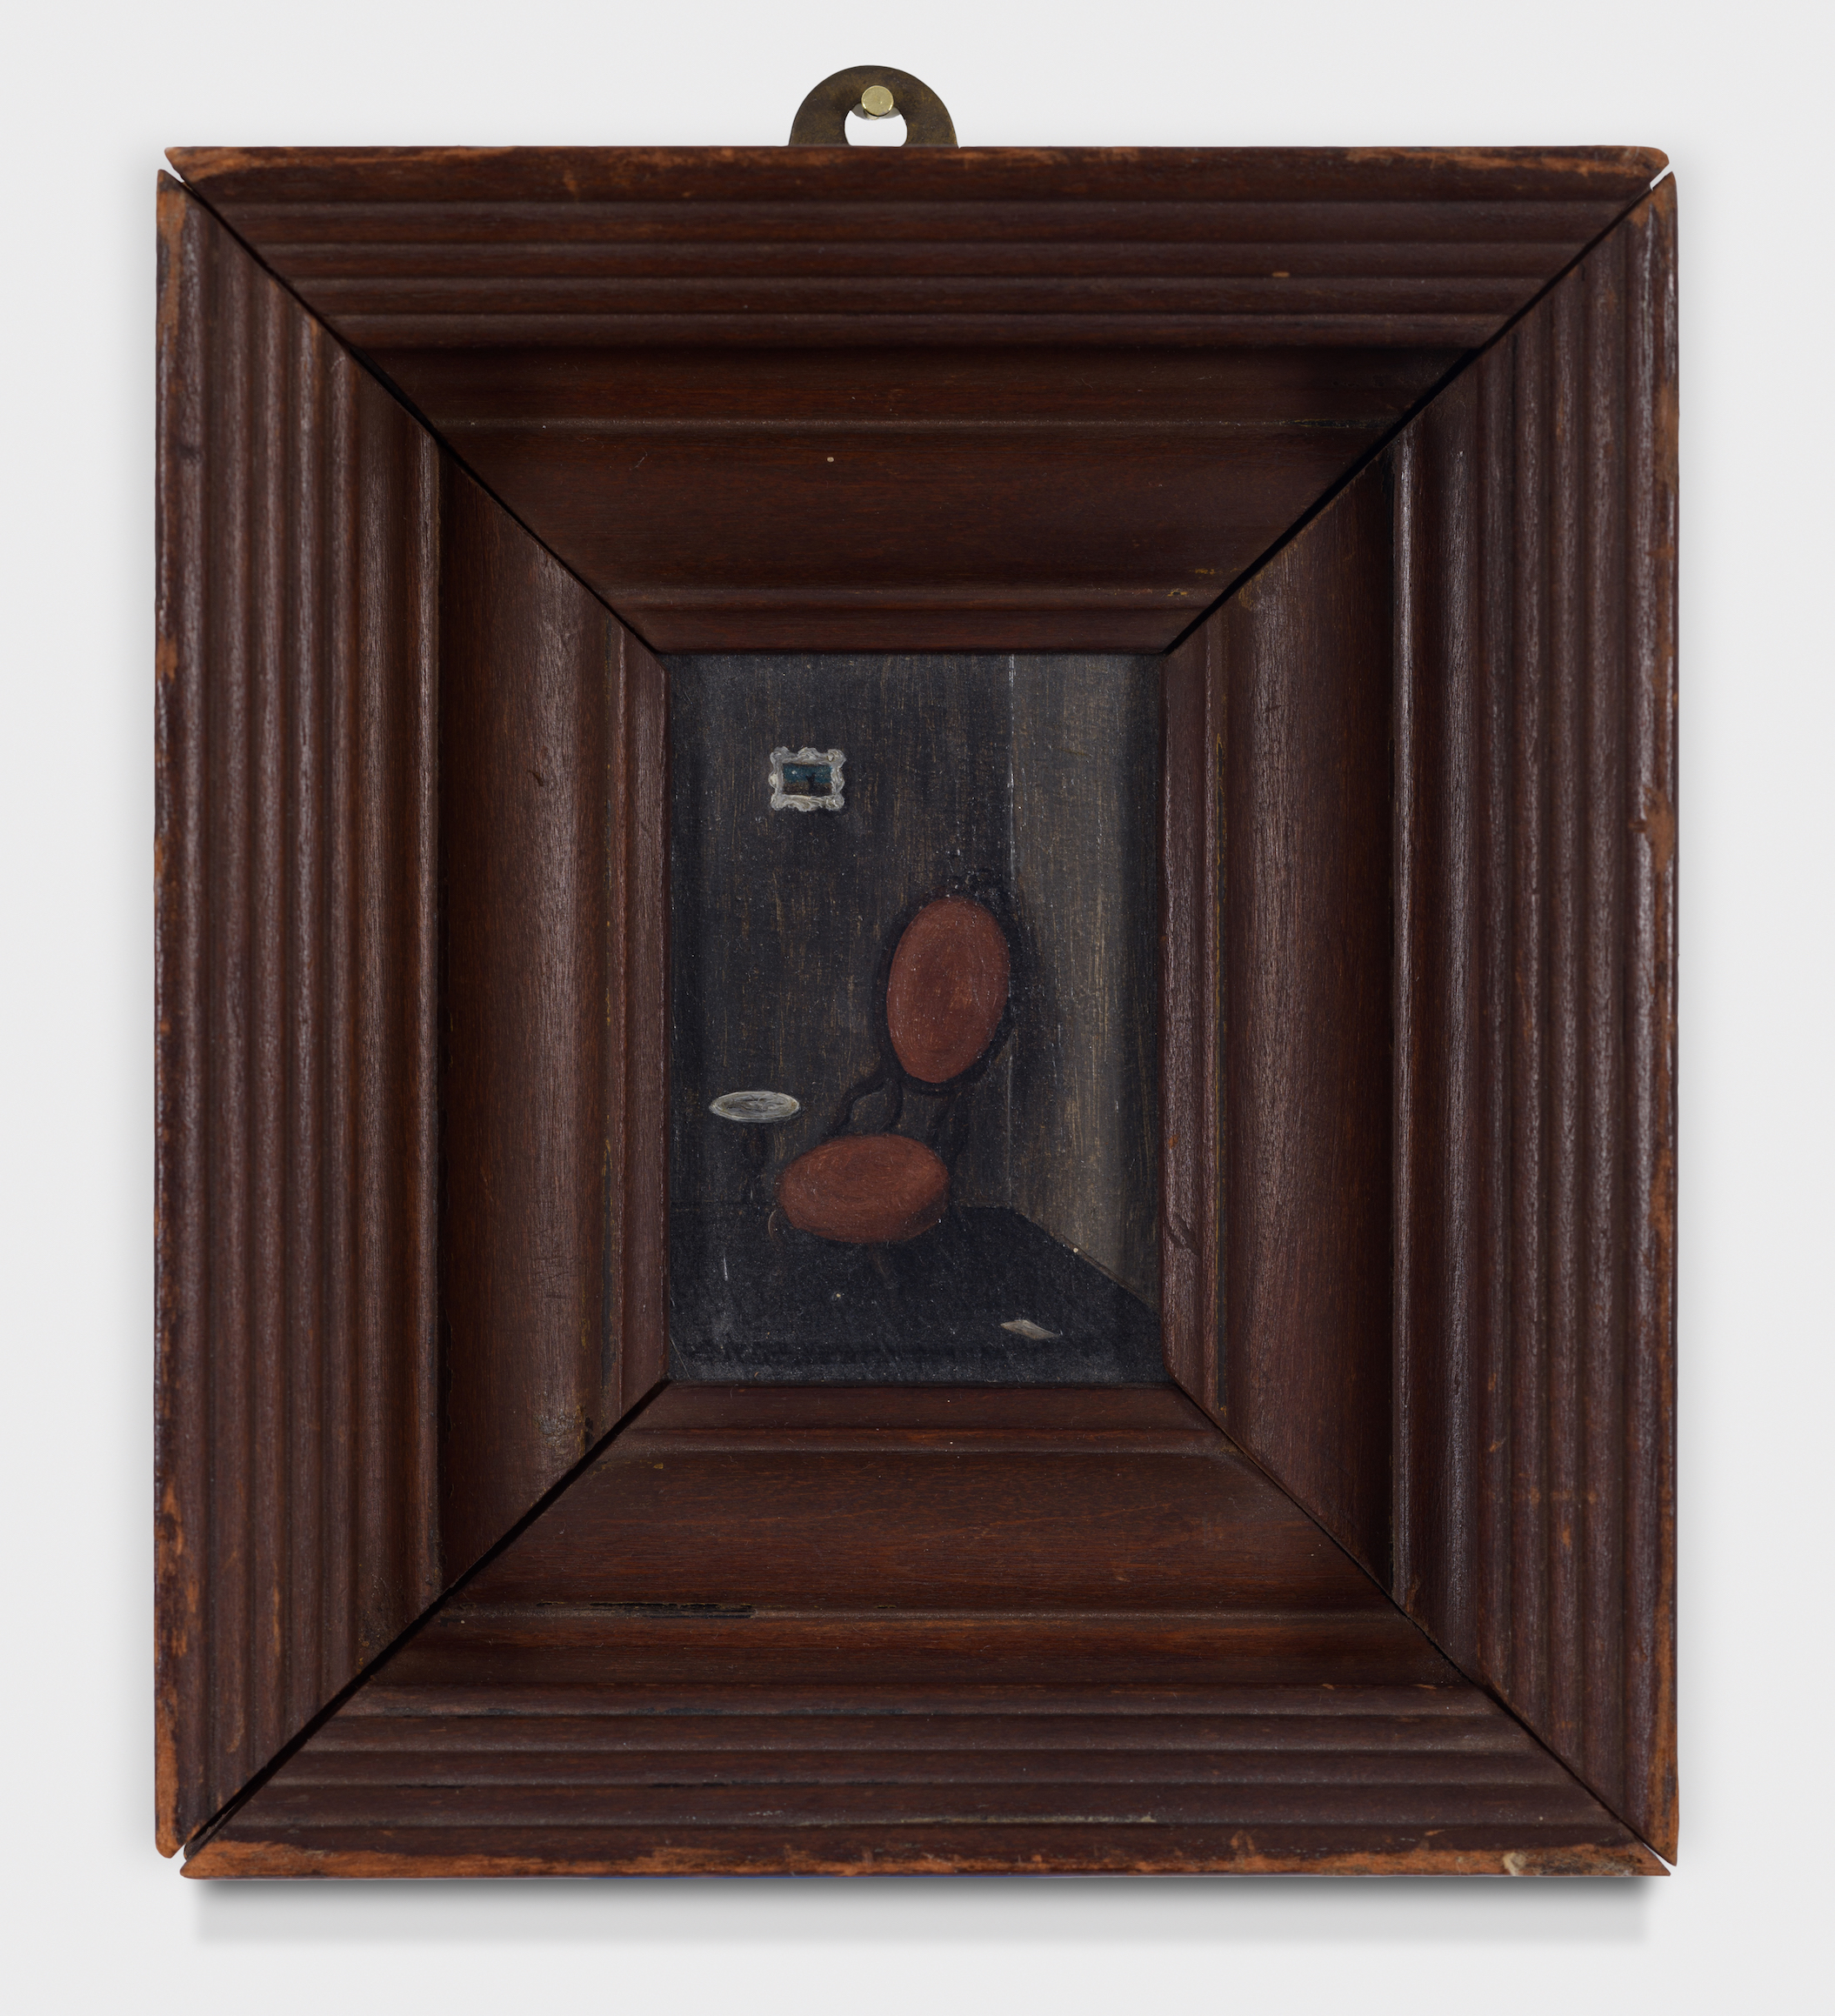 Victorian Chair,  c. 1945, Oil on board, 3 1/4 × 2 3/8 inches (unframed); 7 × 6 inches (framed). From the collection of the late Emma N. Loeb.